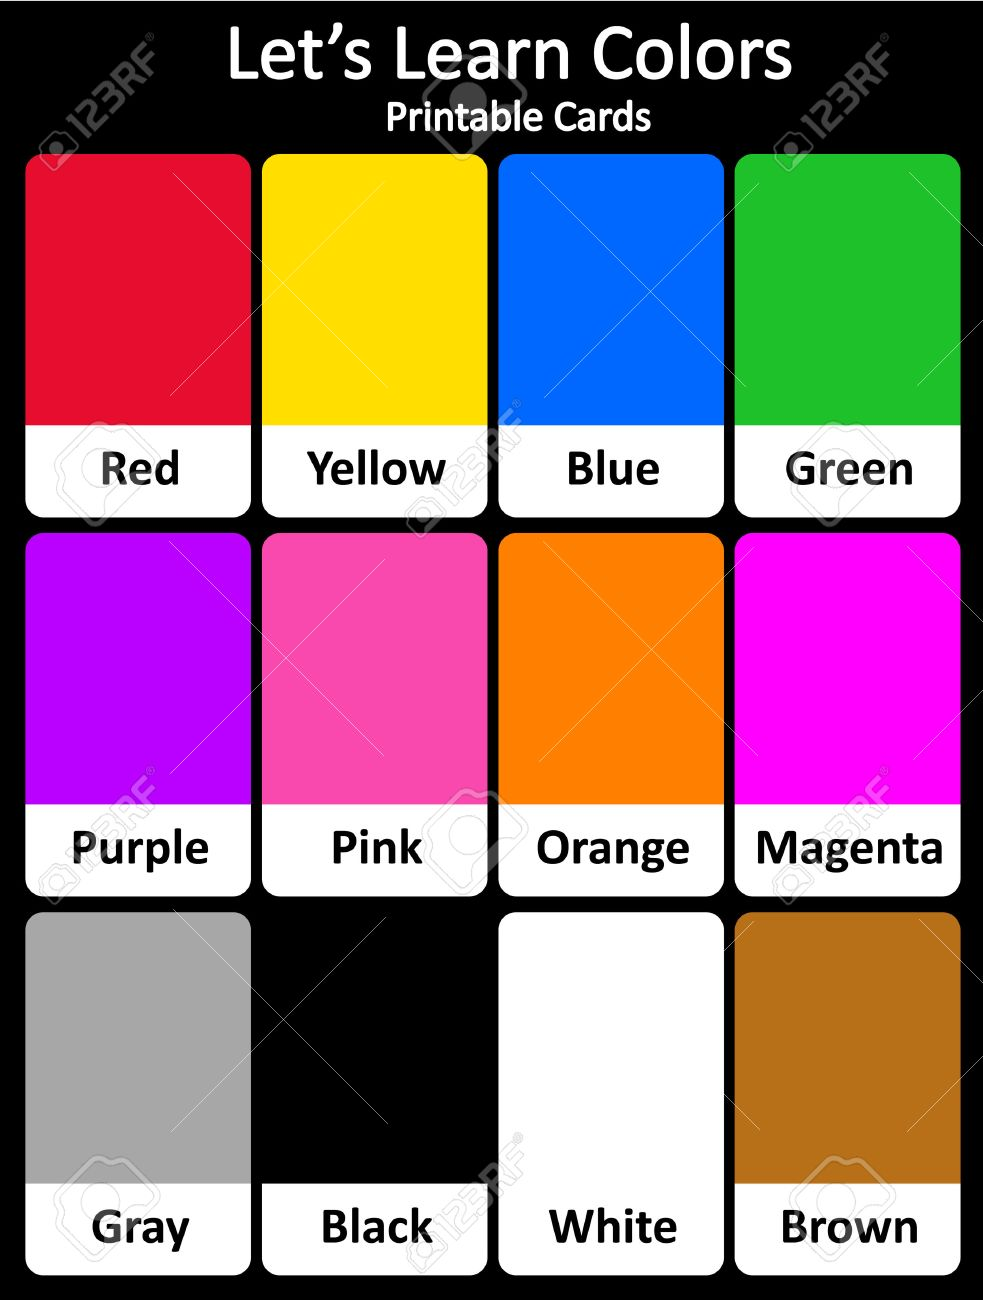 printable flash card colletion for colors and their names for